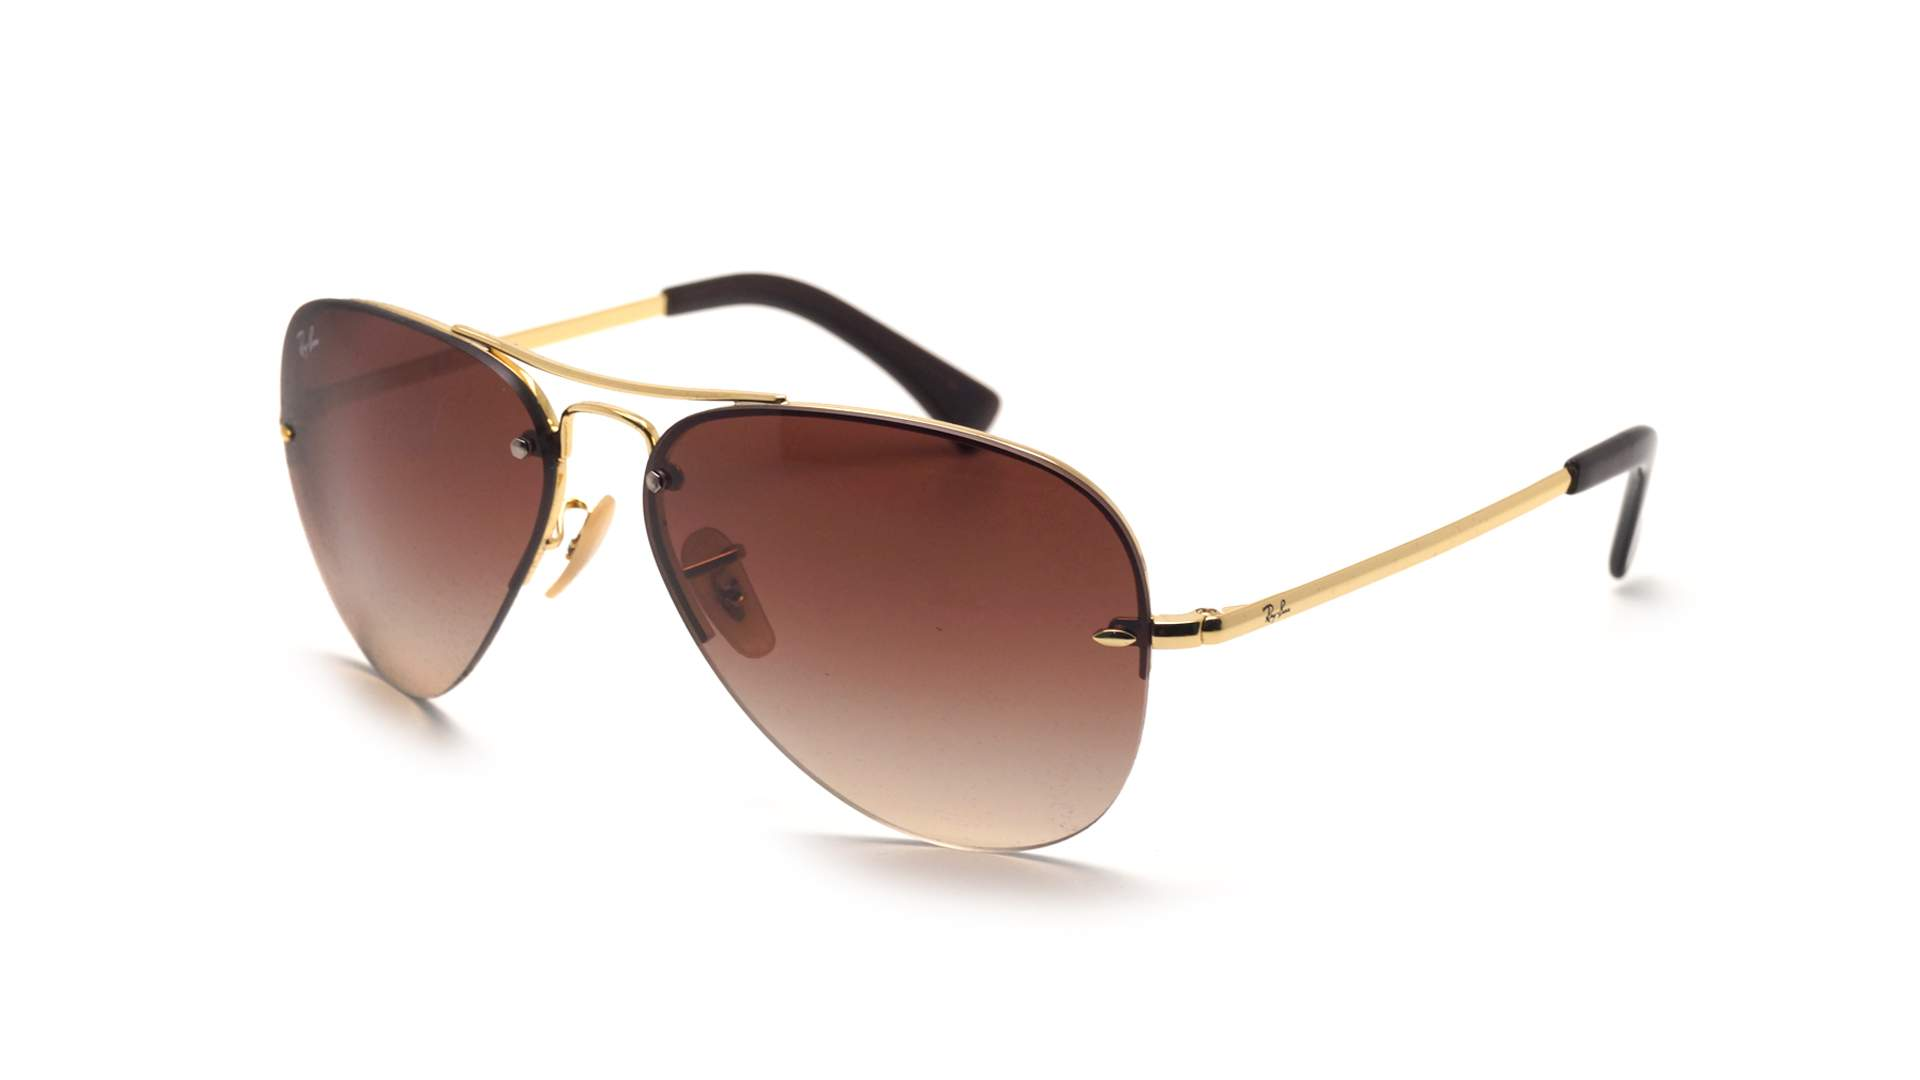 e1f2b60580a Sunglasses Ray-Ban RB3449 001 13 59-14 Gold Large Gradient